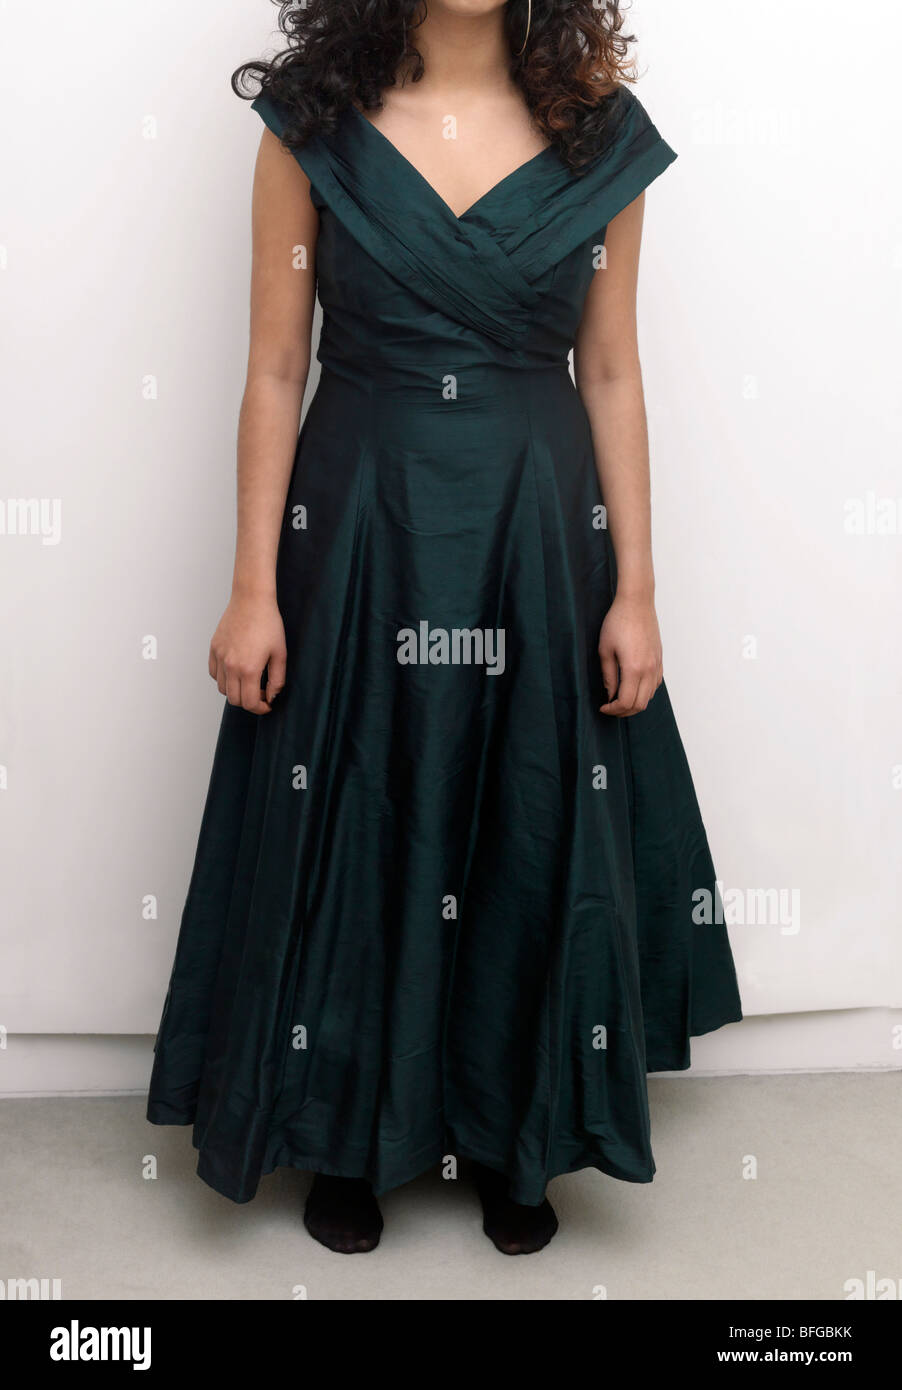 Green Silk Full Length Evening Gown Dress Stock Photos & Green Silk ...